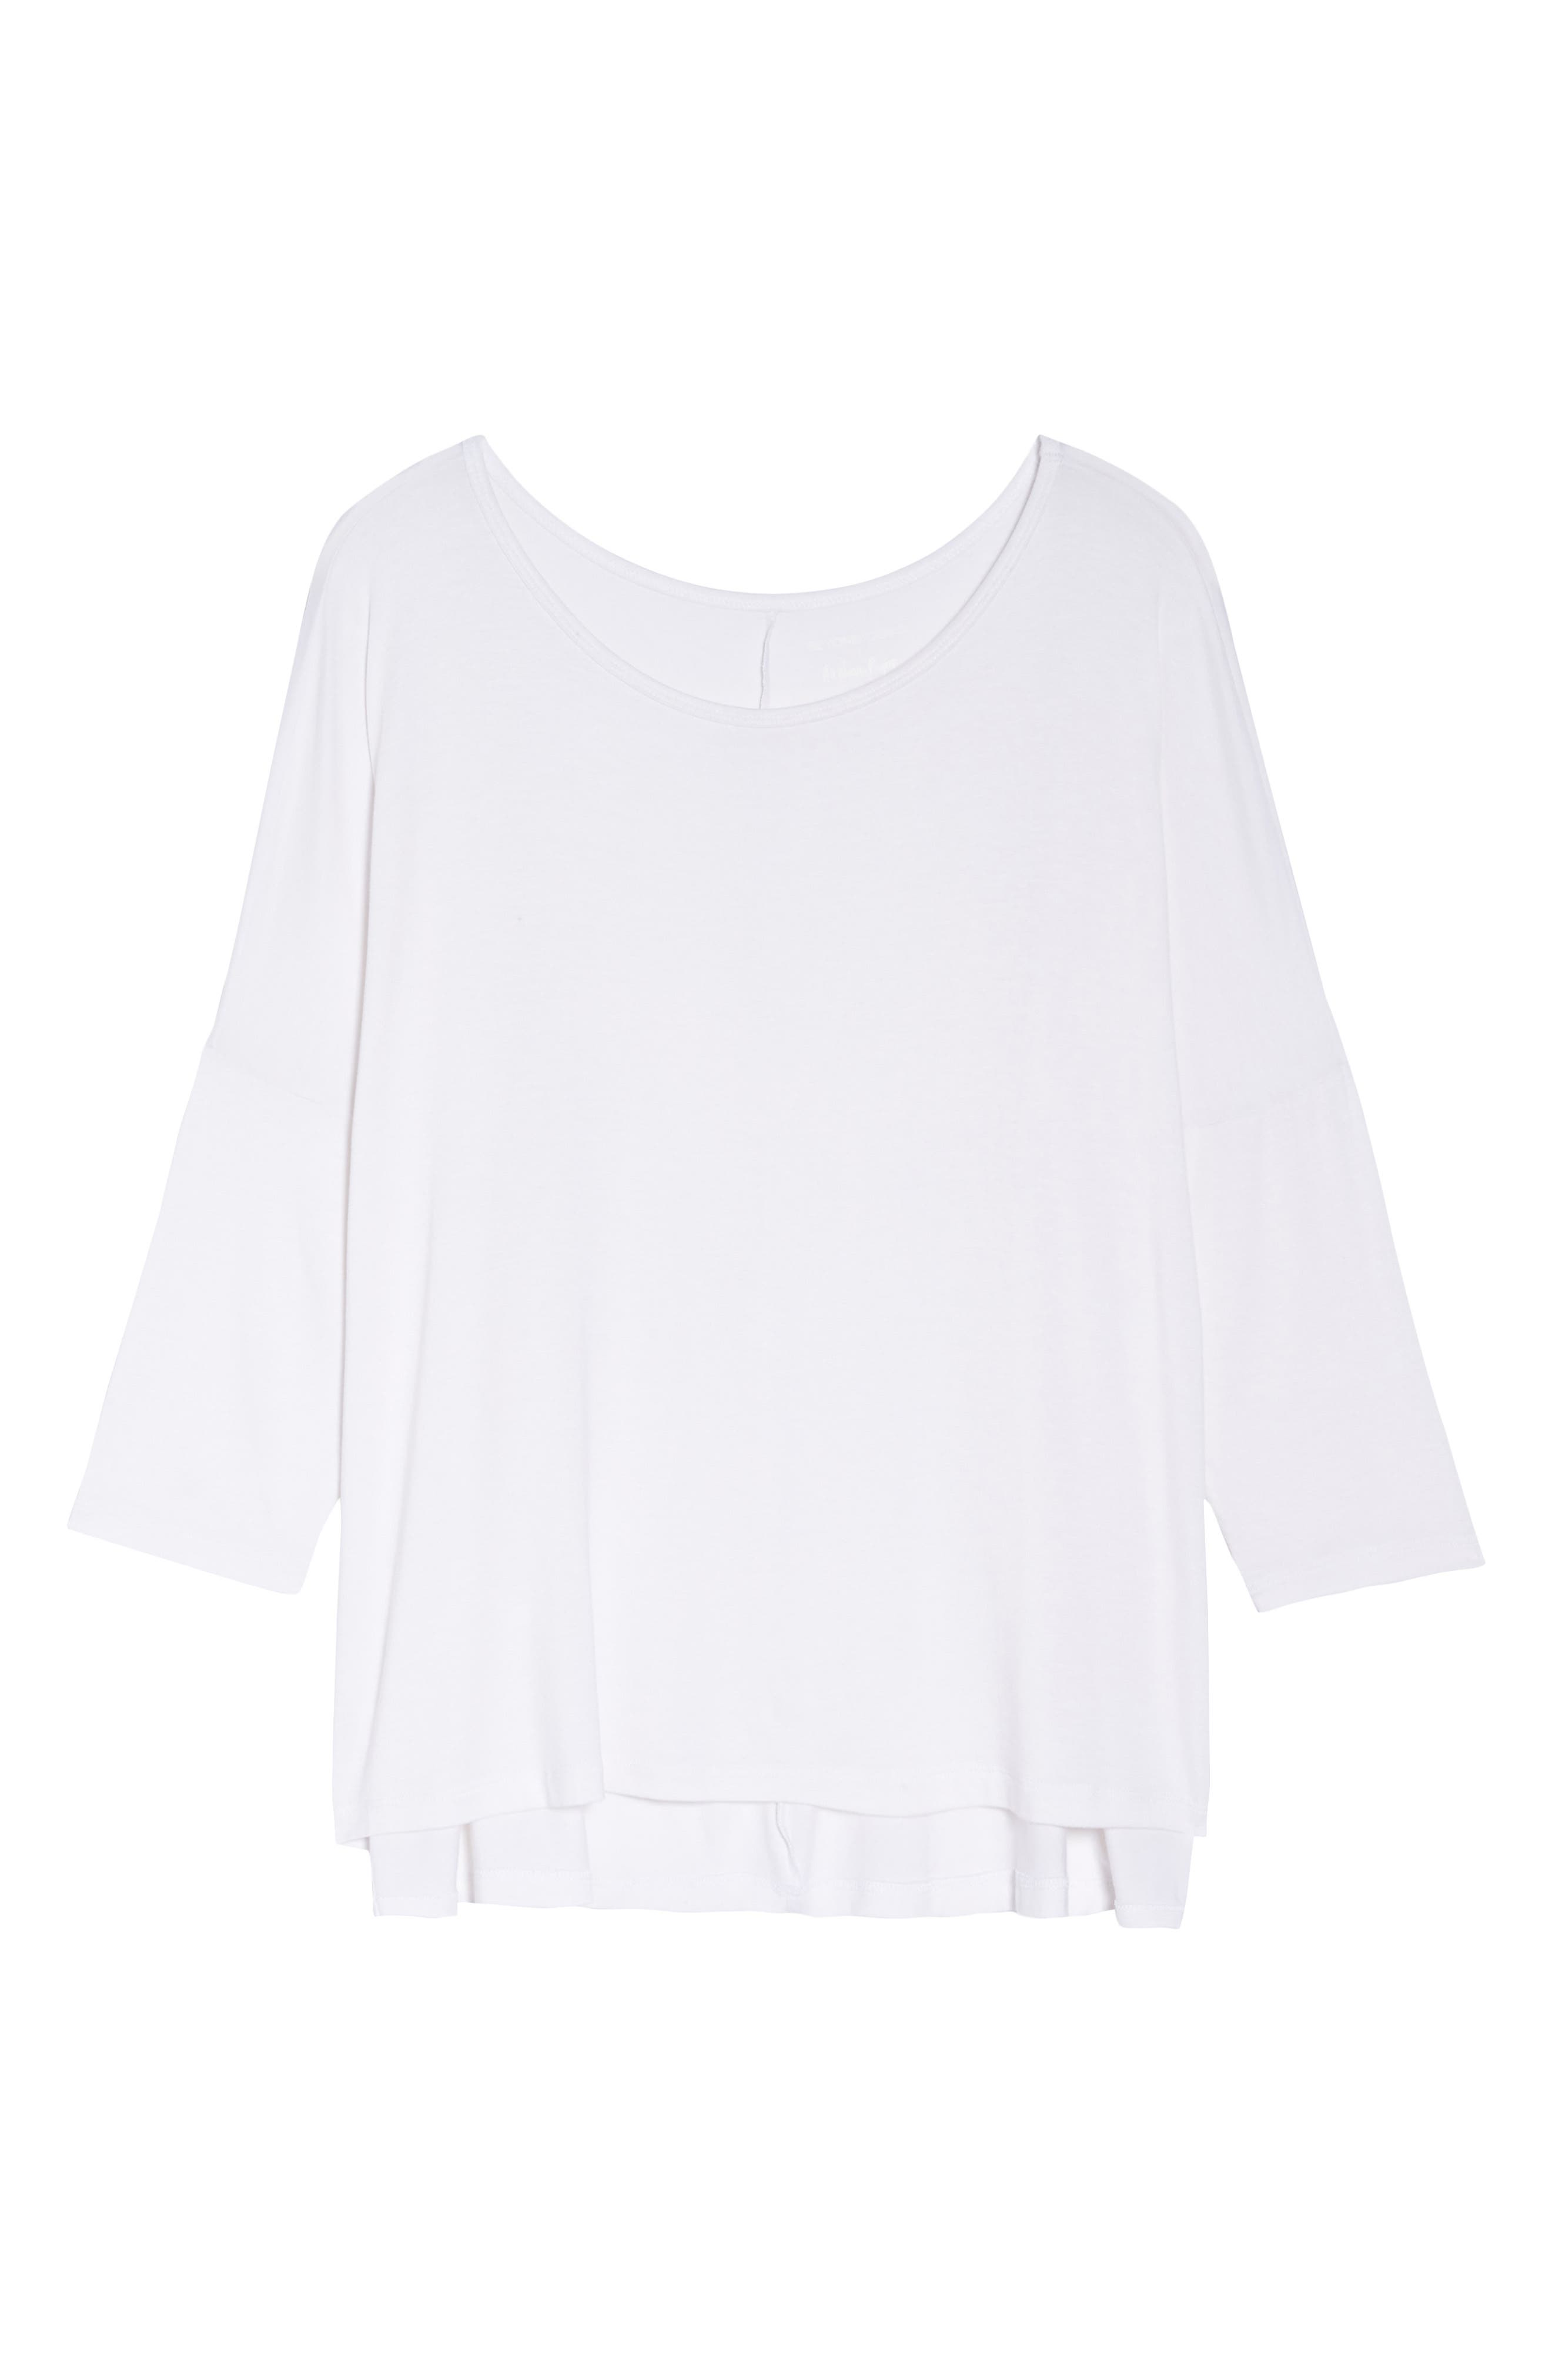 Slink It Boxy Pullover,                             Alternate thumbnail 6, color,                             White